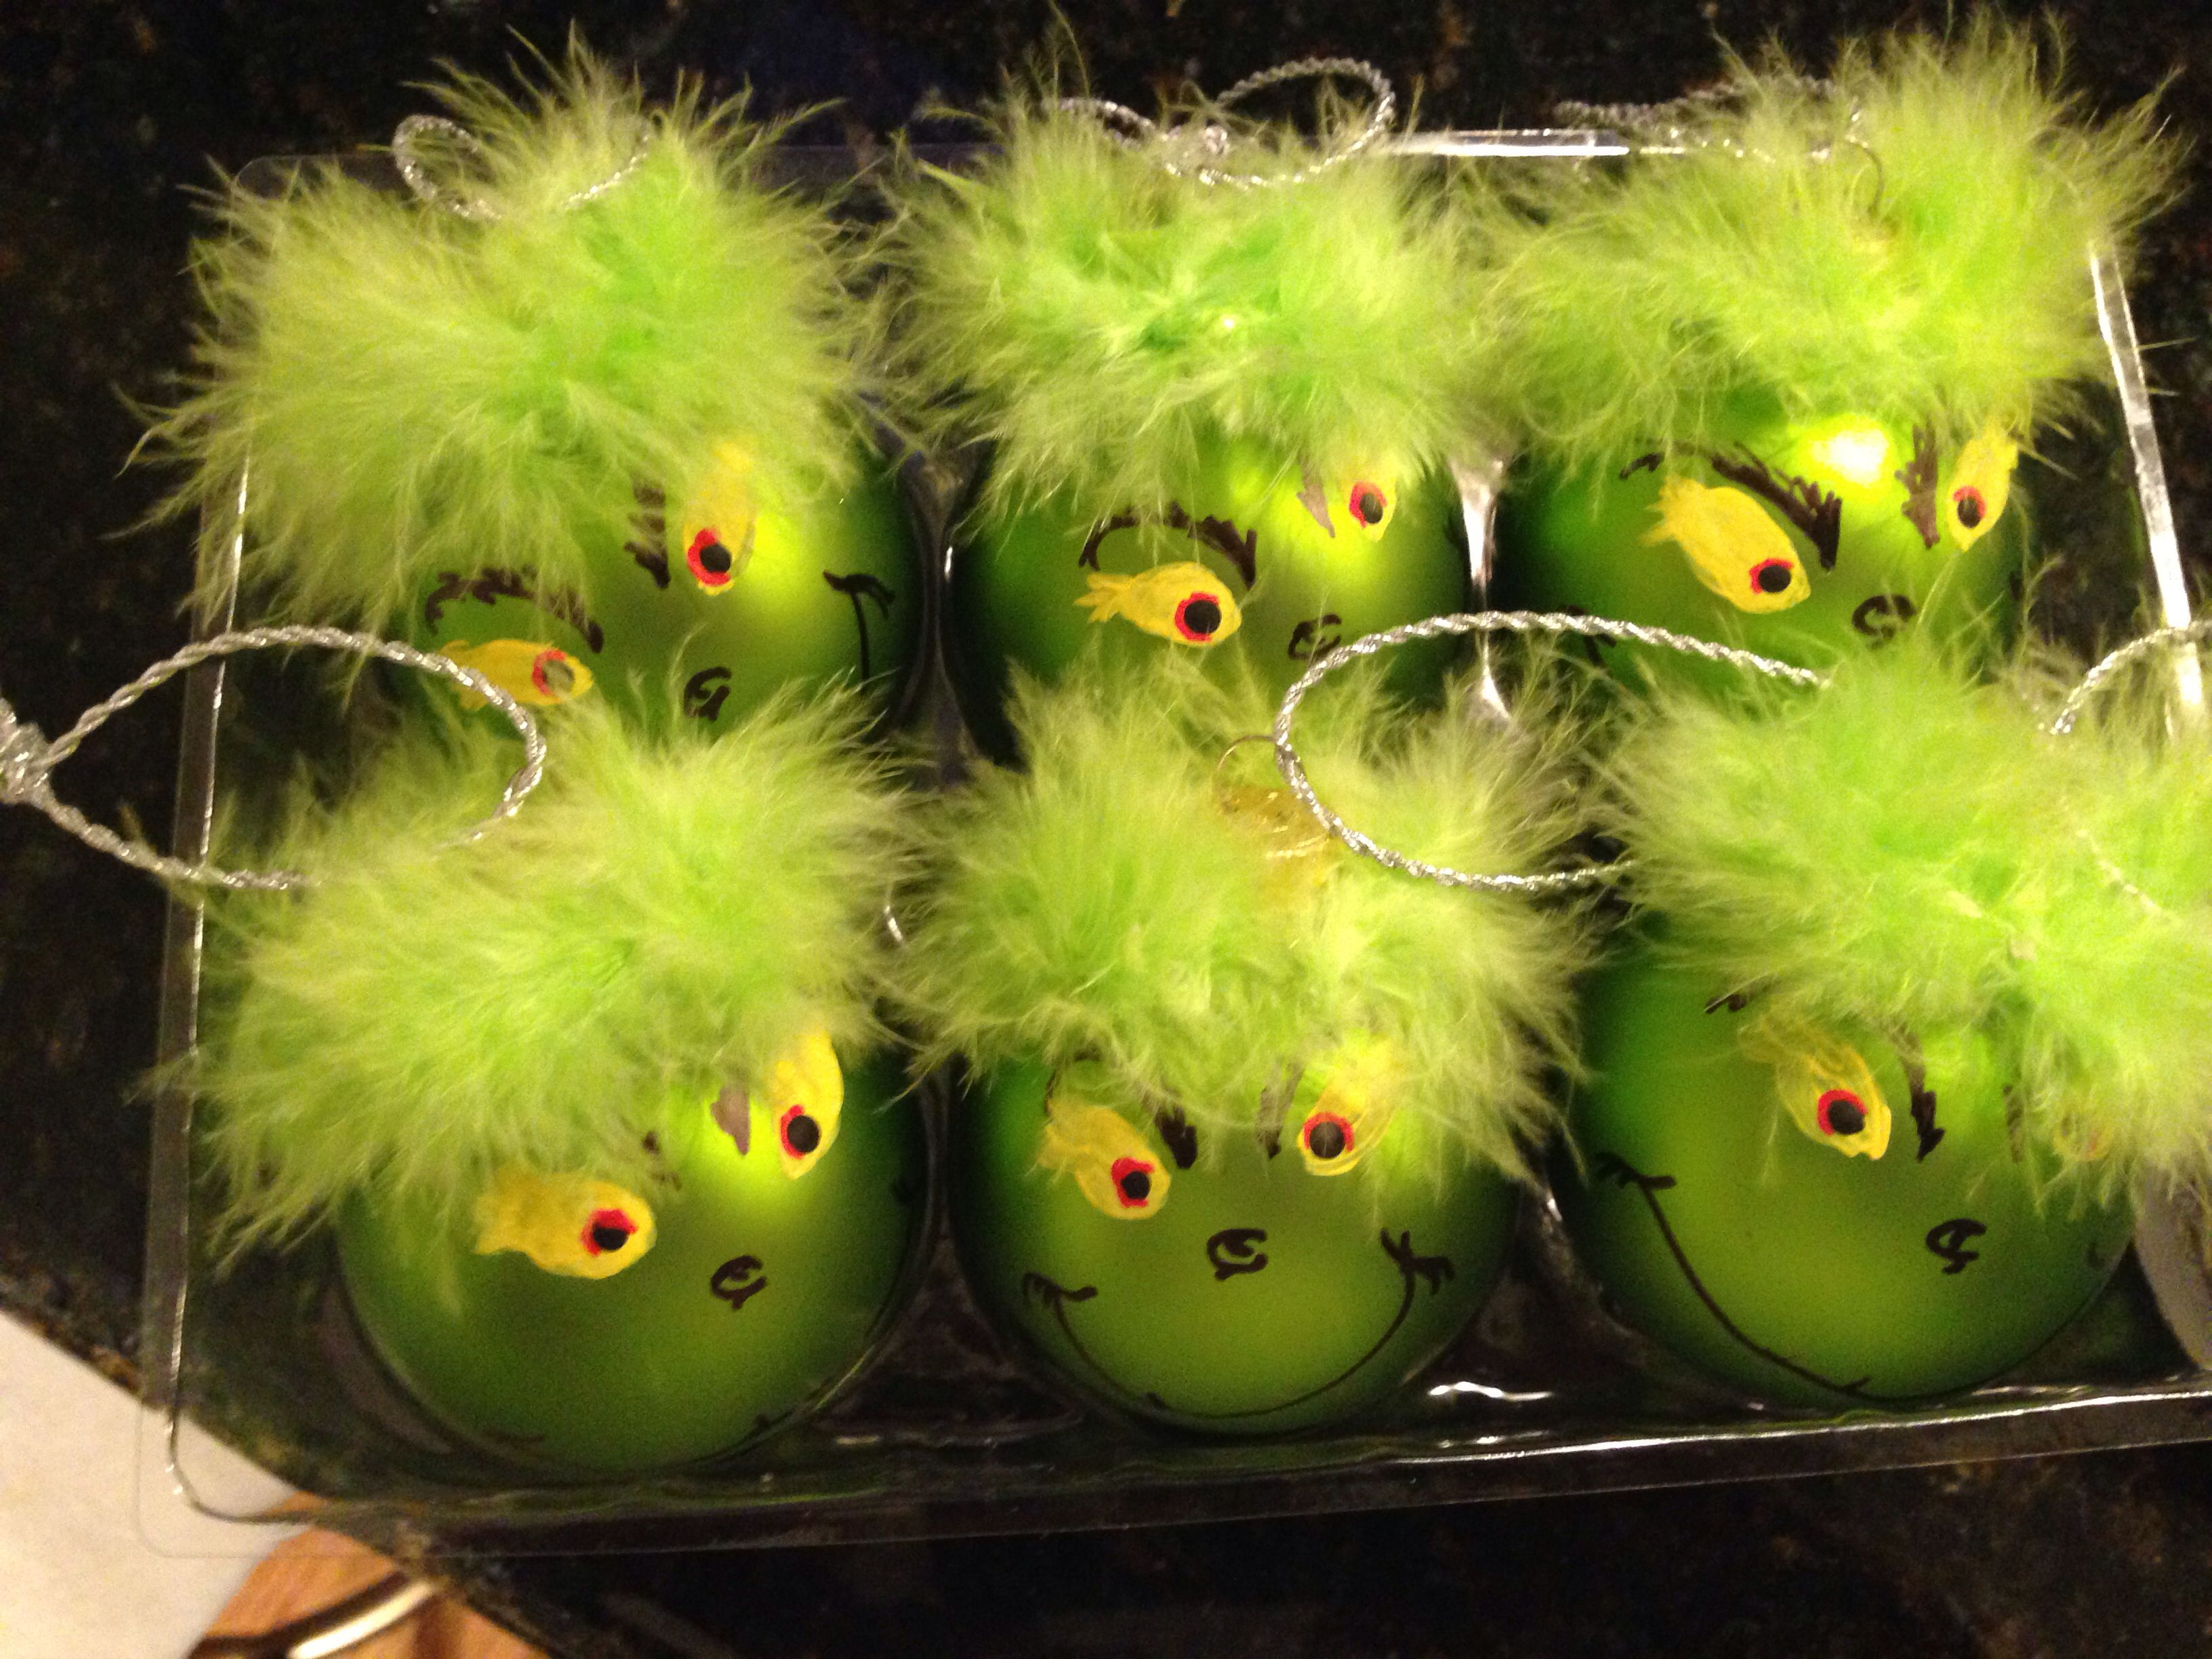 Grinch DIY ornaments lol one feather boa and one box of